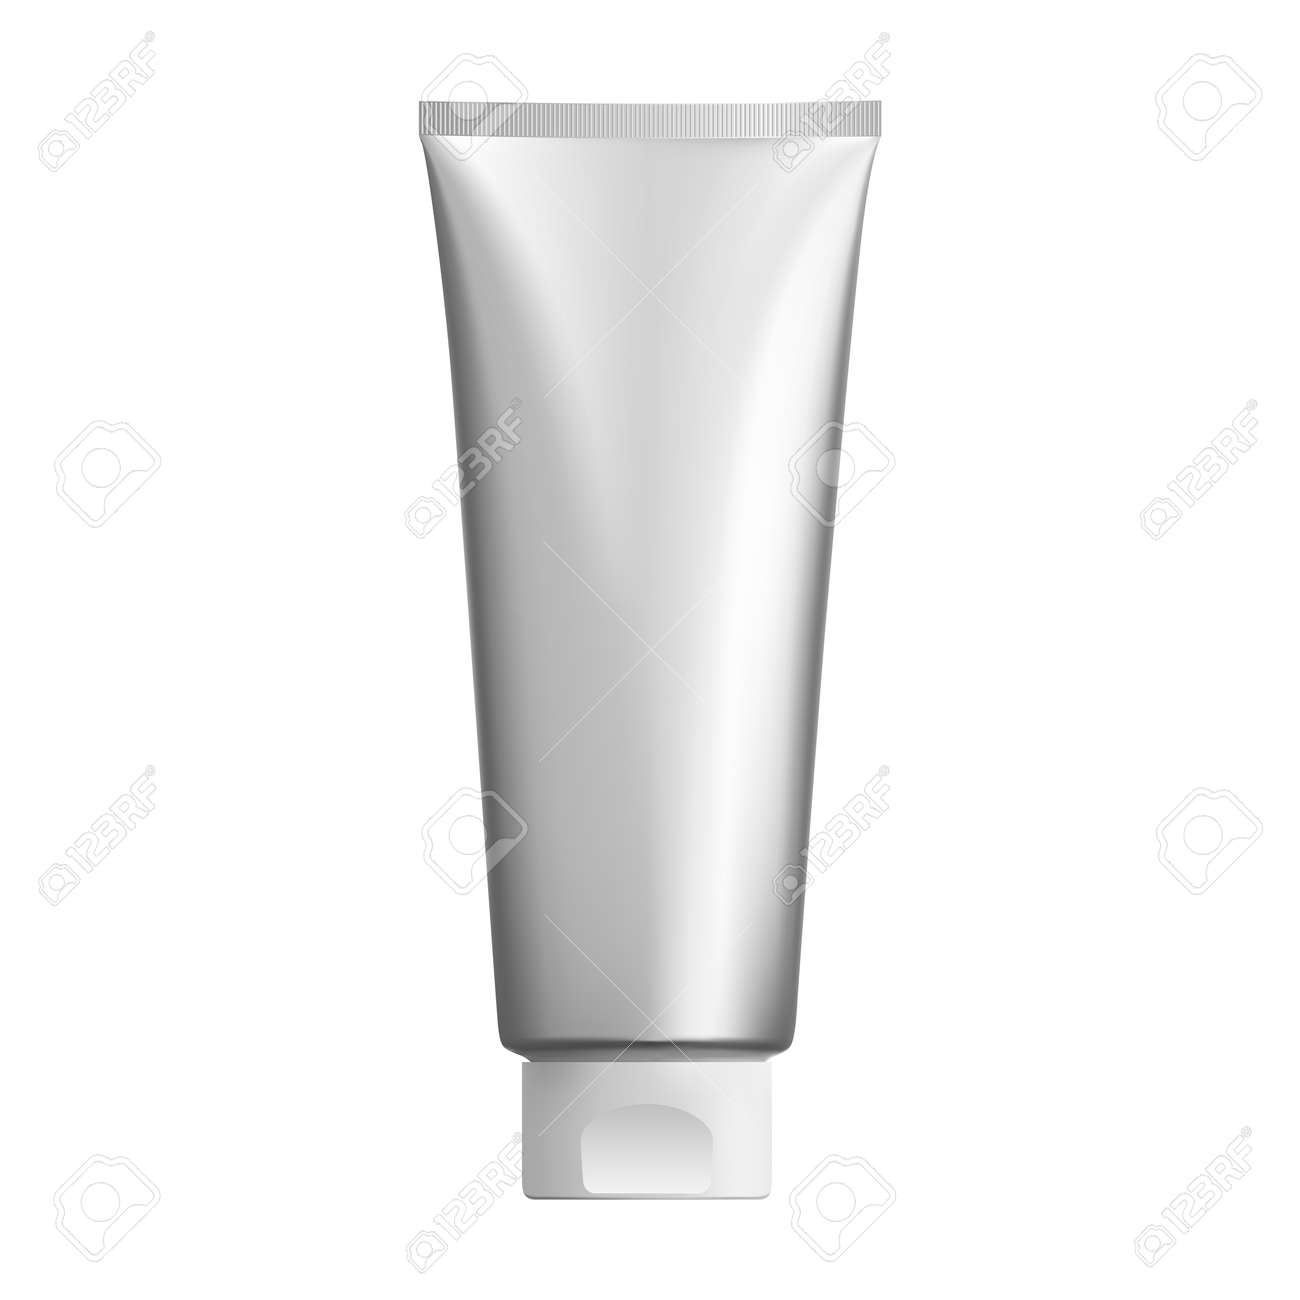 Silver cosmetic tube mockup. Plastic packaging for cosmetology cream product. 3d pack design for ointment or gel. Realistic mock up illustration for tooth paste or foam - 146688493